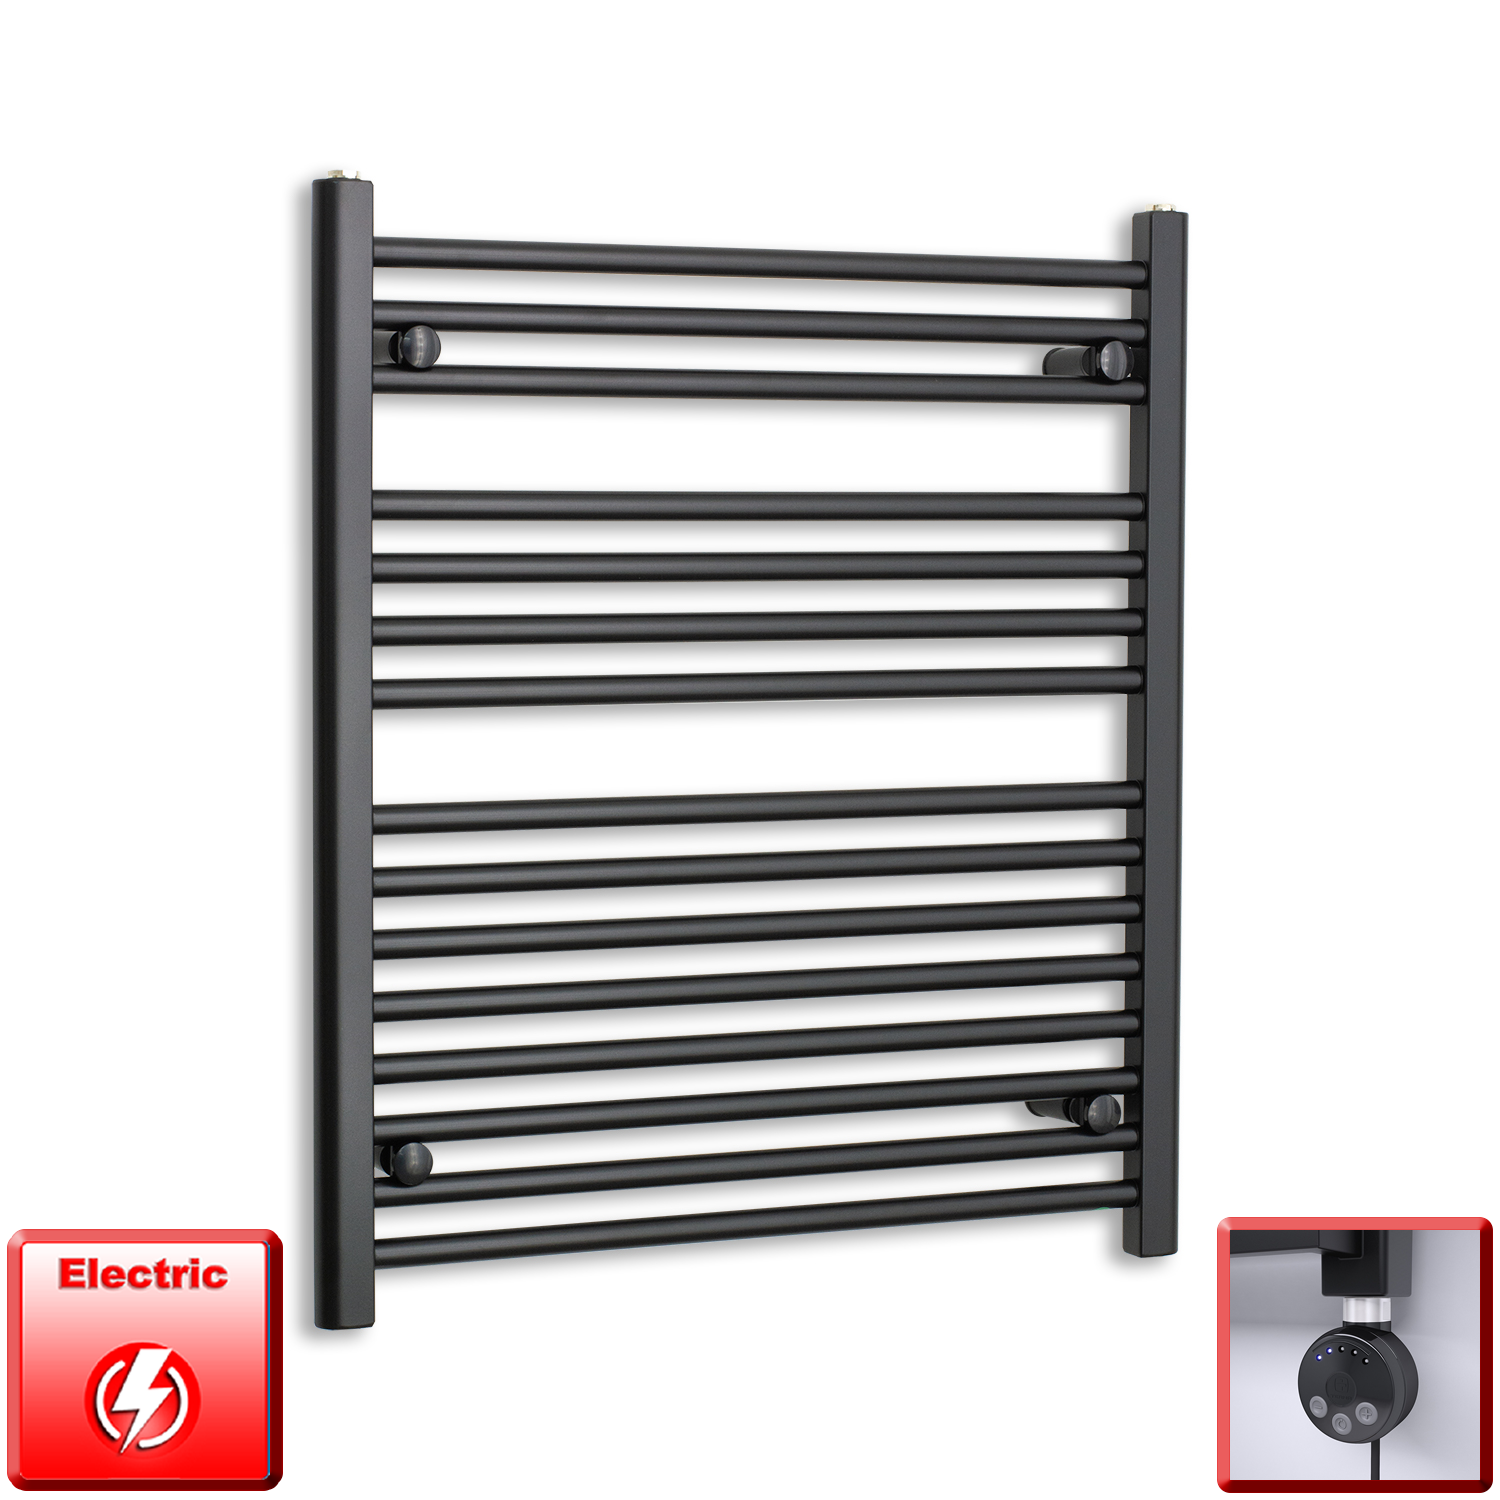 700mm Wide 800mm High Pre-Filled Black Electric Towel Rail Radiator With Thermostatic MEG Element